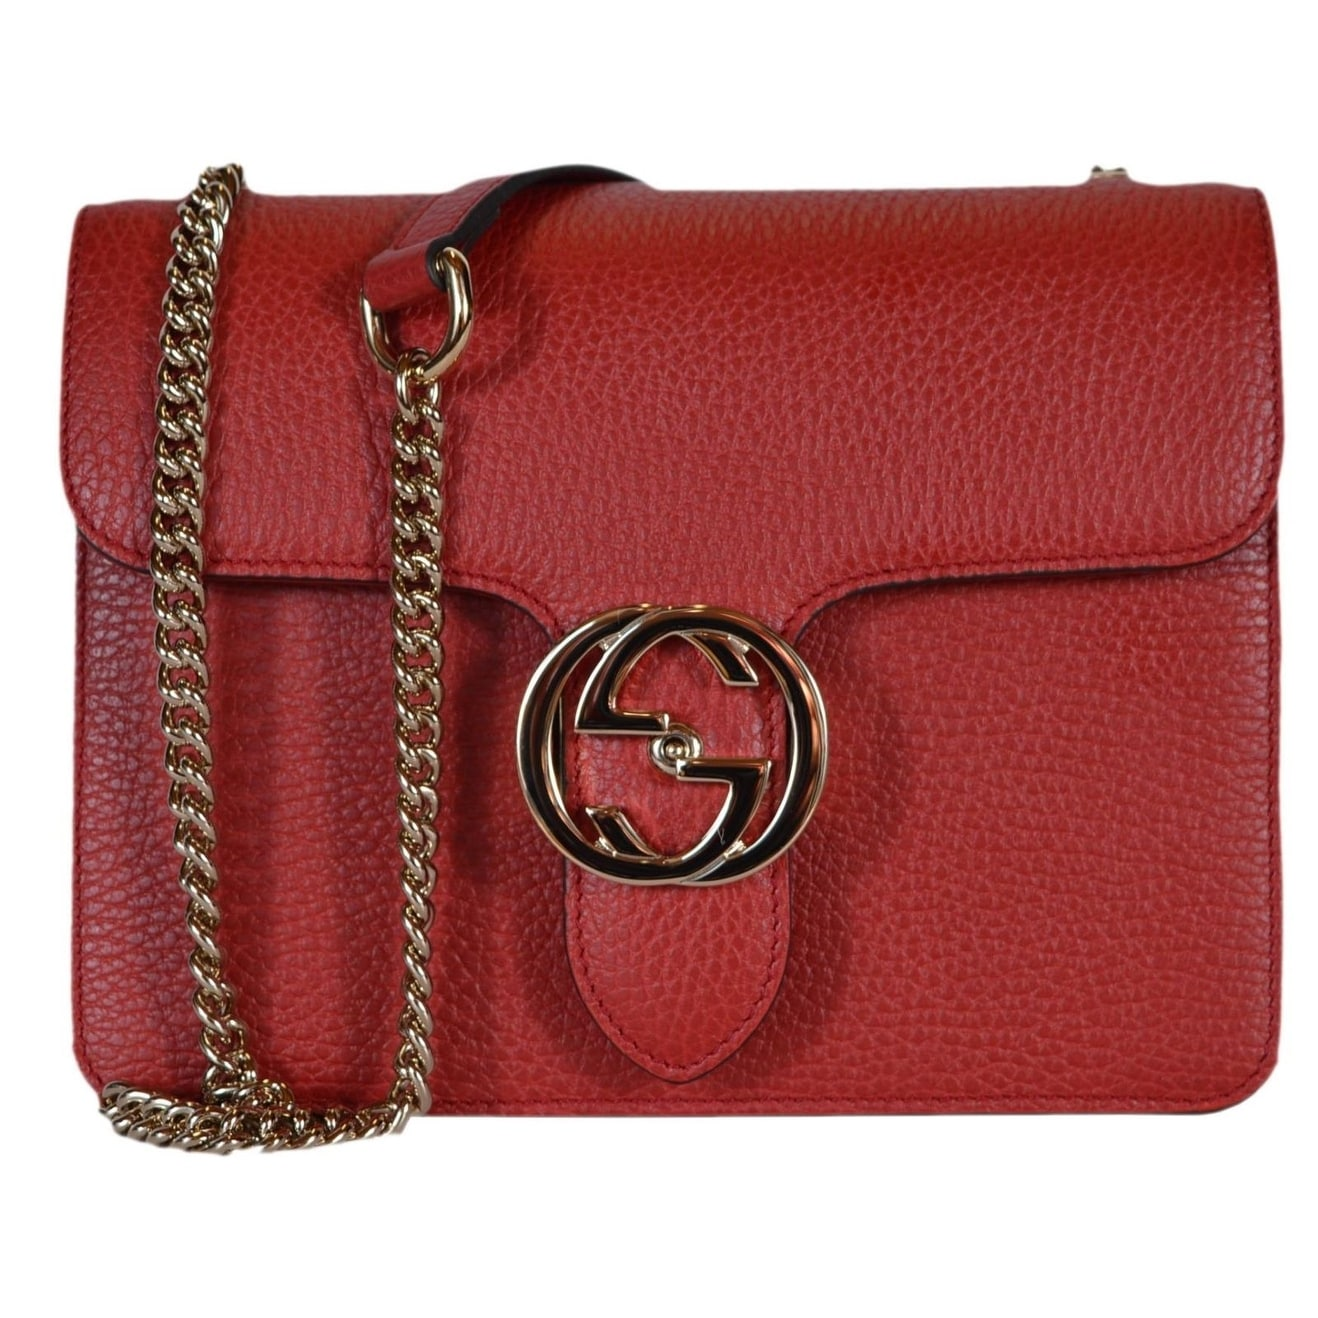 57fd1436fba Gucci Women s Red Leather 510304 Interlocking GG Crossbody Purse Handbag -  7.75